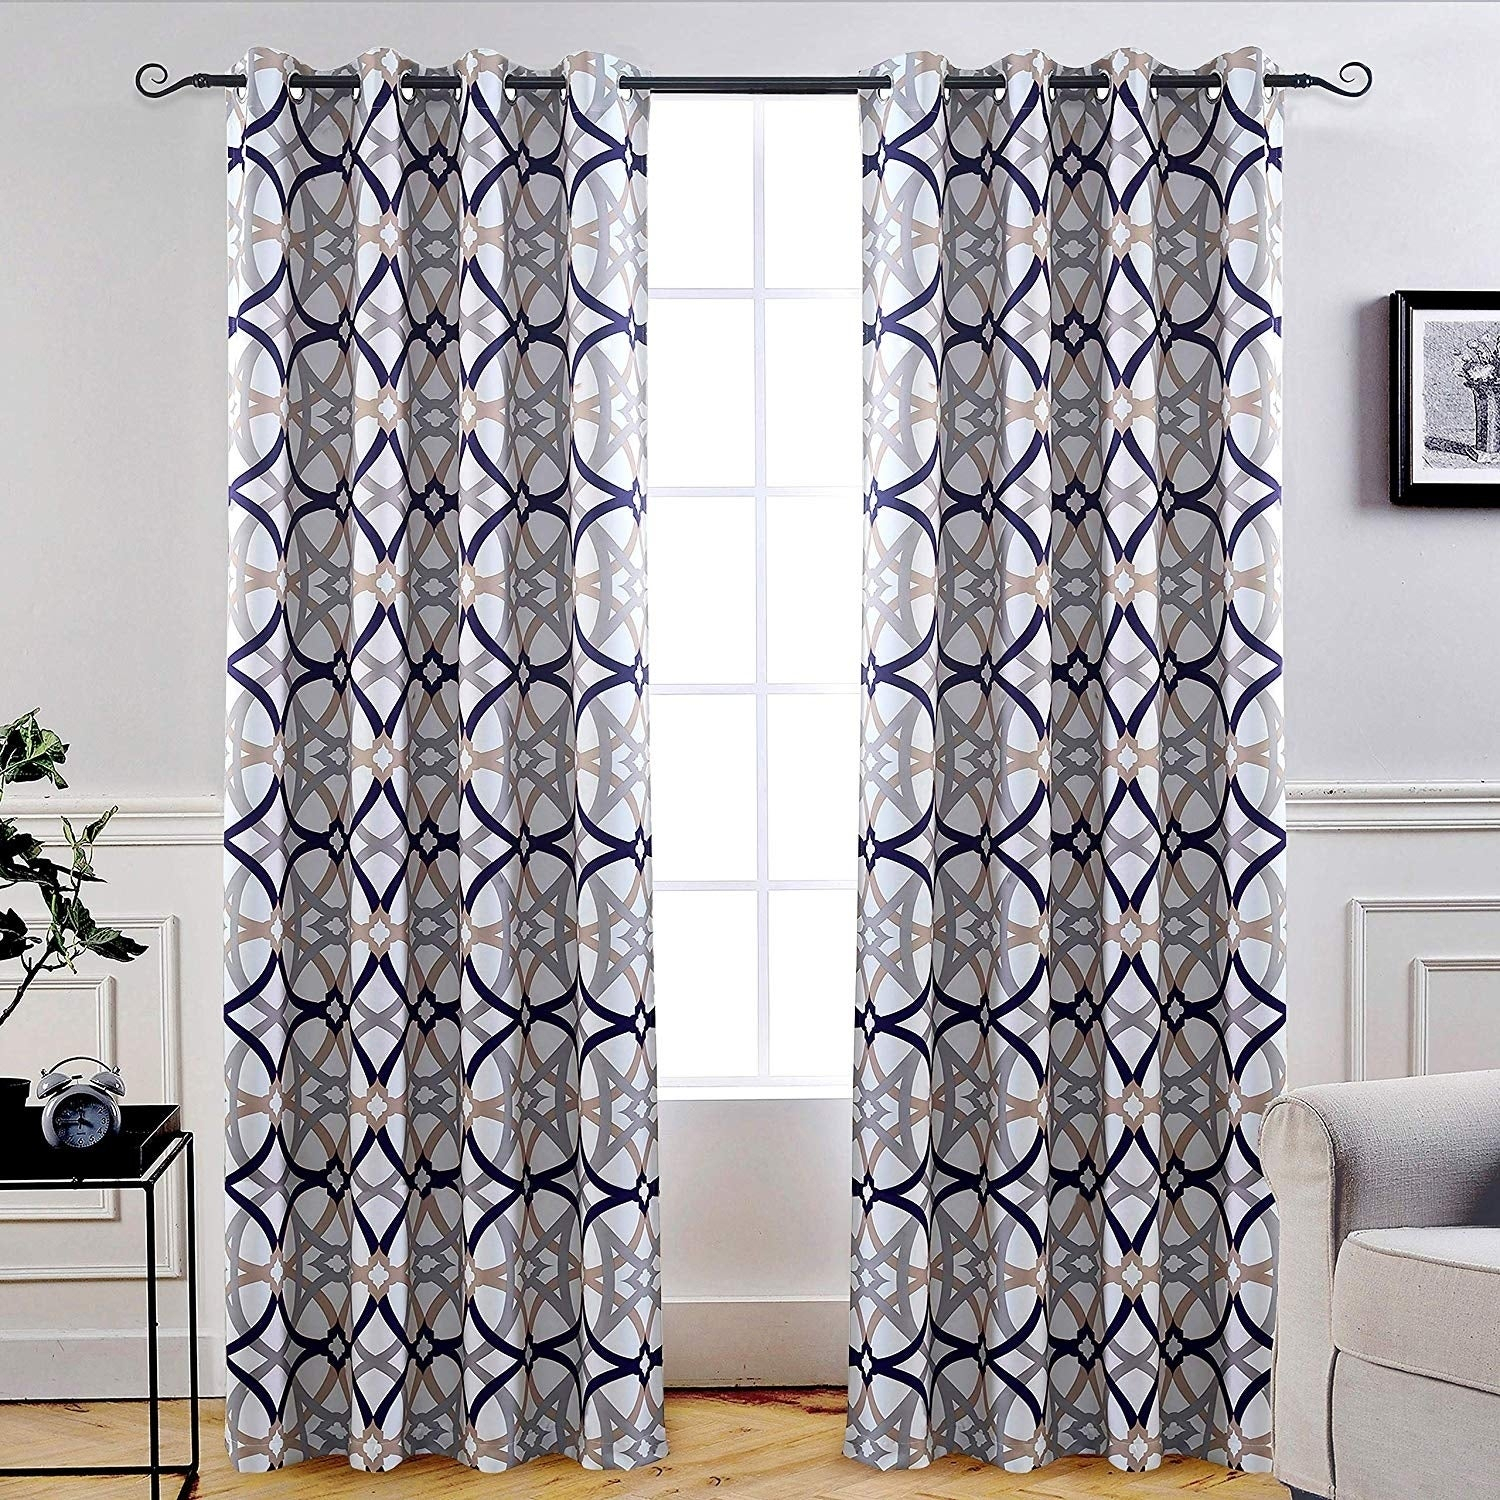 Carson Carrington Jarvenpaa Insulated Blackout Grommet Window Curtain Panel Pair With Regard To Insulated Blackout Grommet Window Curtain Panel Pairs (View 7 of 20)